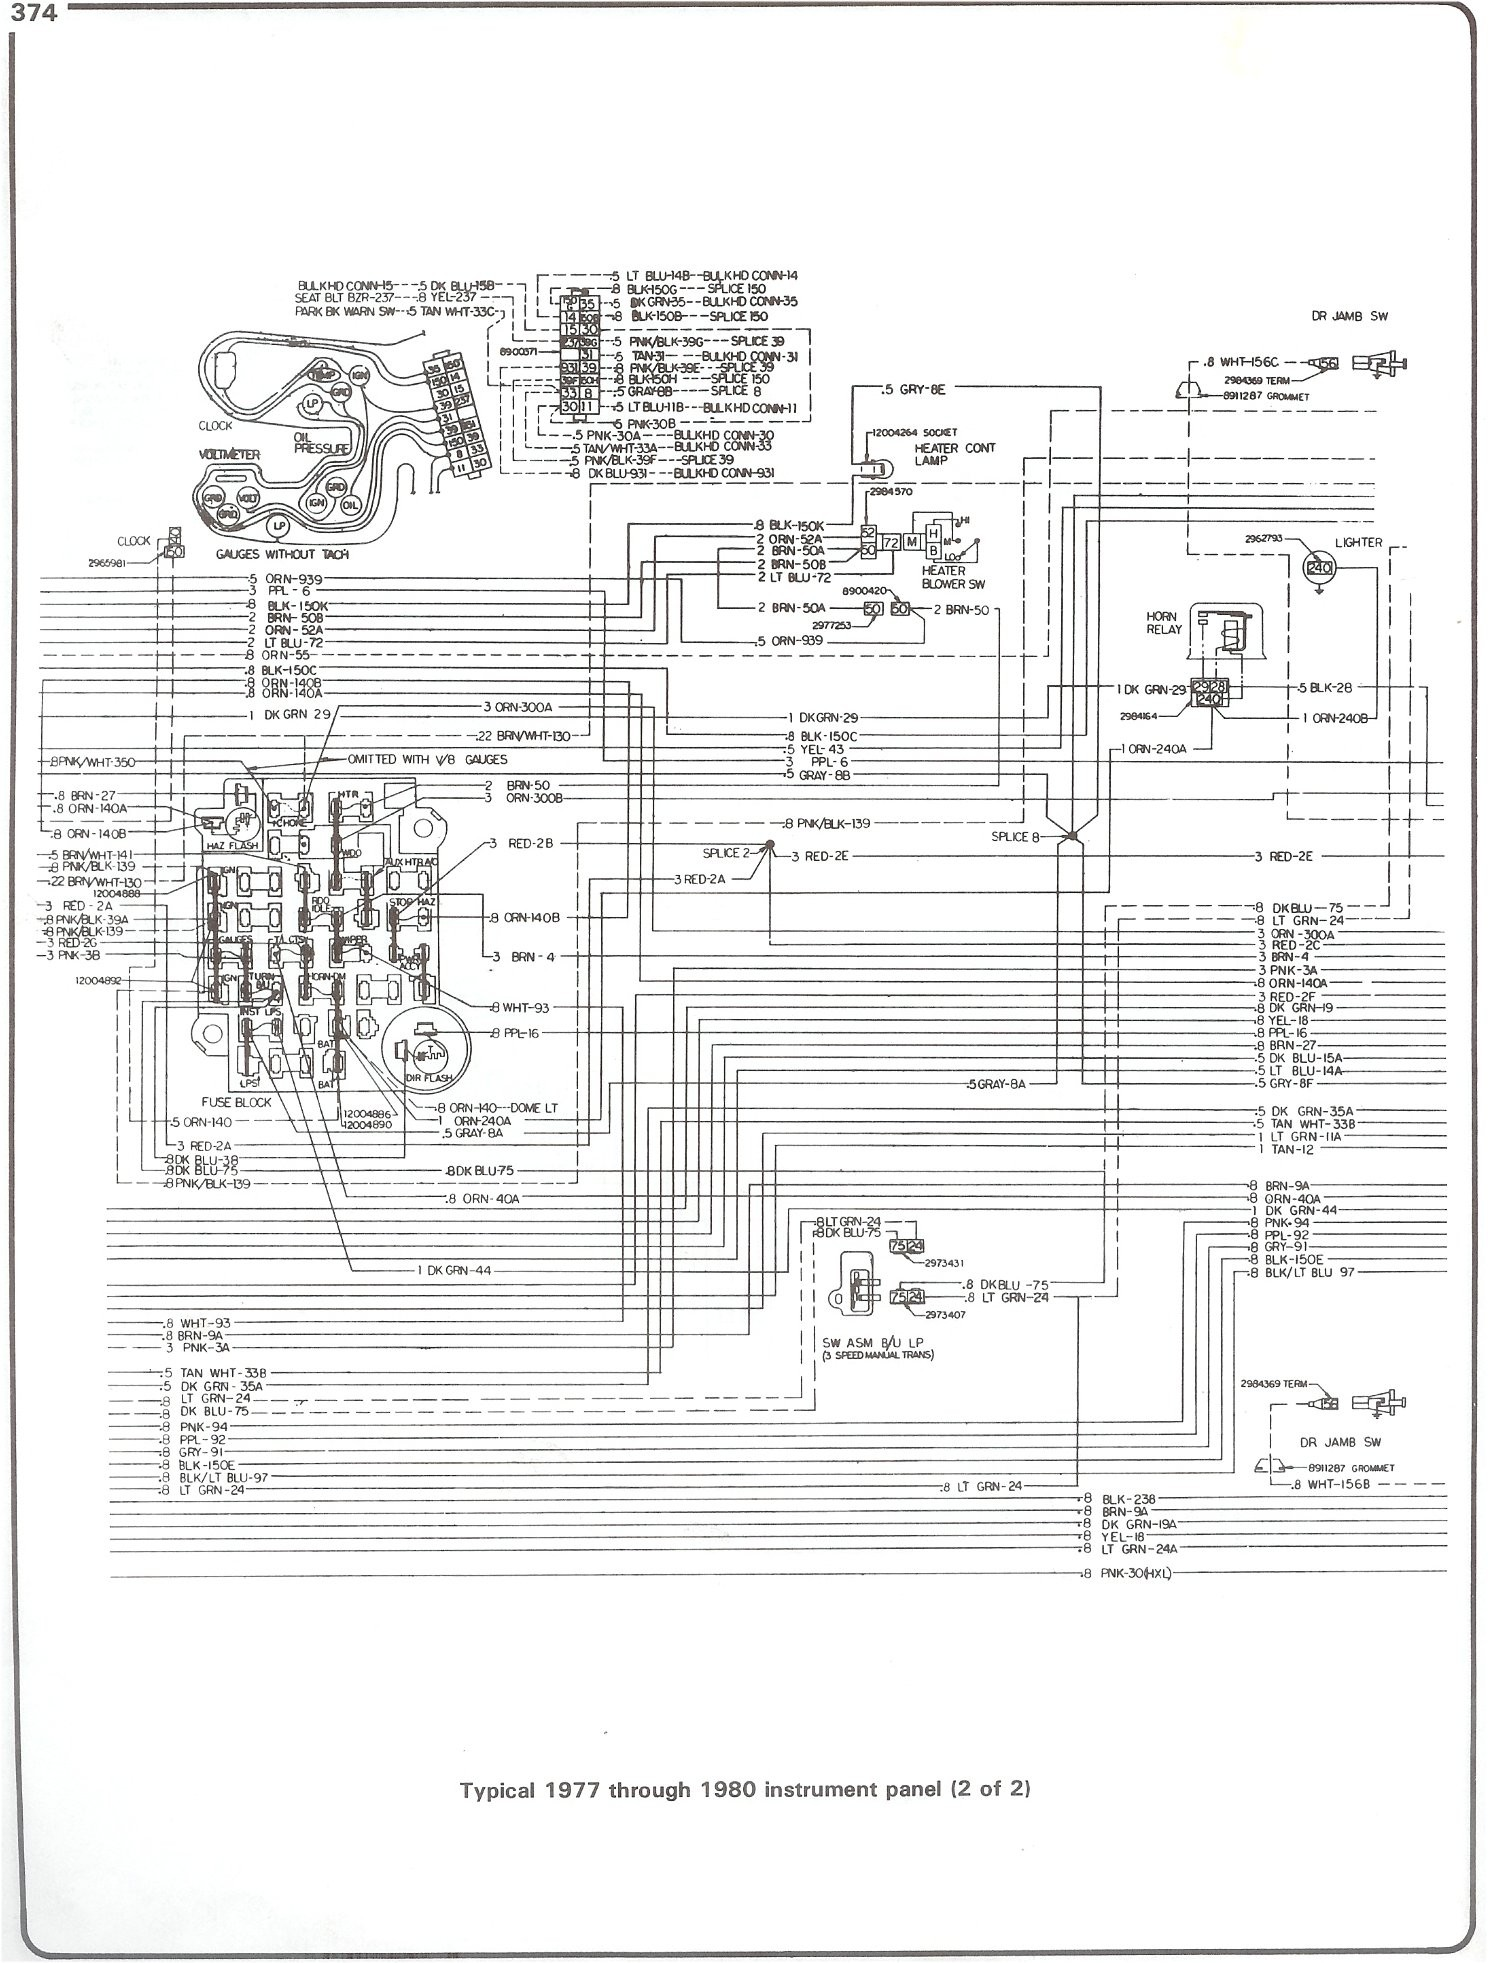 350 Chevy Engine Diagram My Wiring 1977 Small Block Motor 77 80 Instrument Pg2 With 78 Truck Starter Solenoid